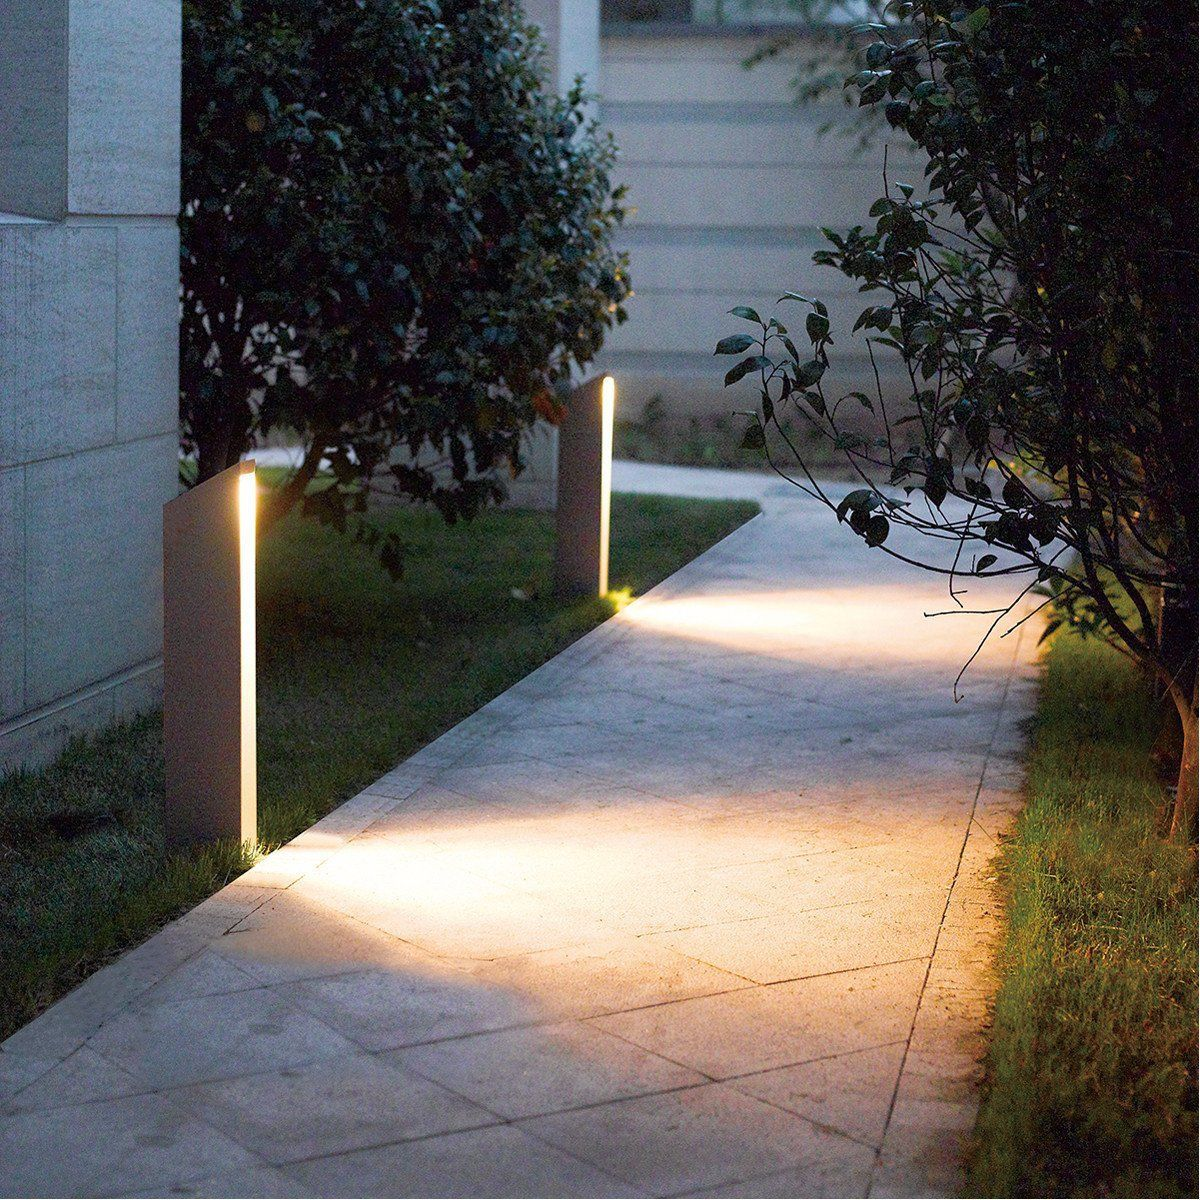 Eurofase Exter2017 Bollard 3 Light 3w Led Outdoor Lighting Landscape Lighting Design Outdoor Lighting Landscape Diy Outdoor Lighting